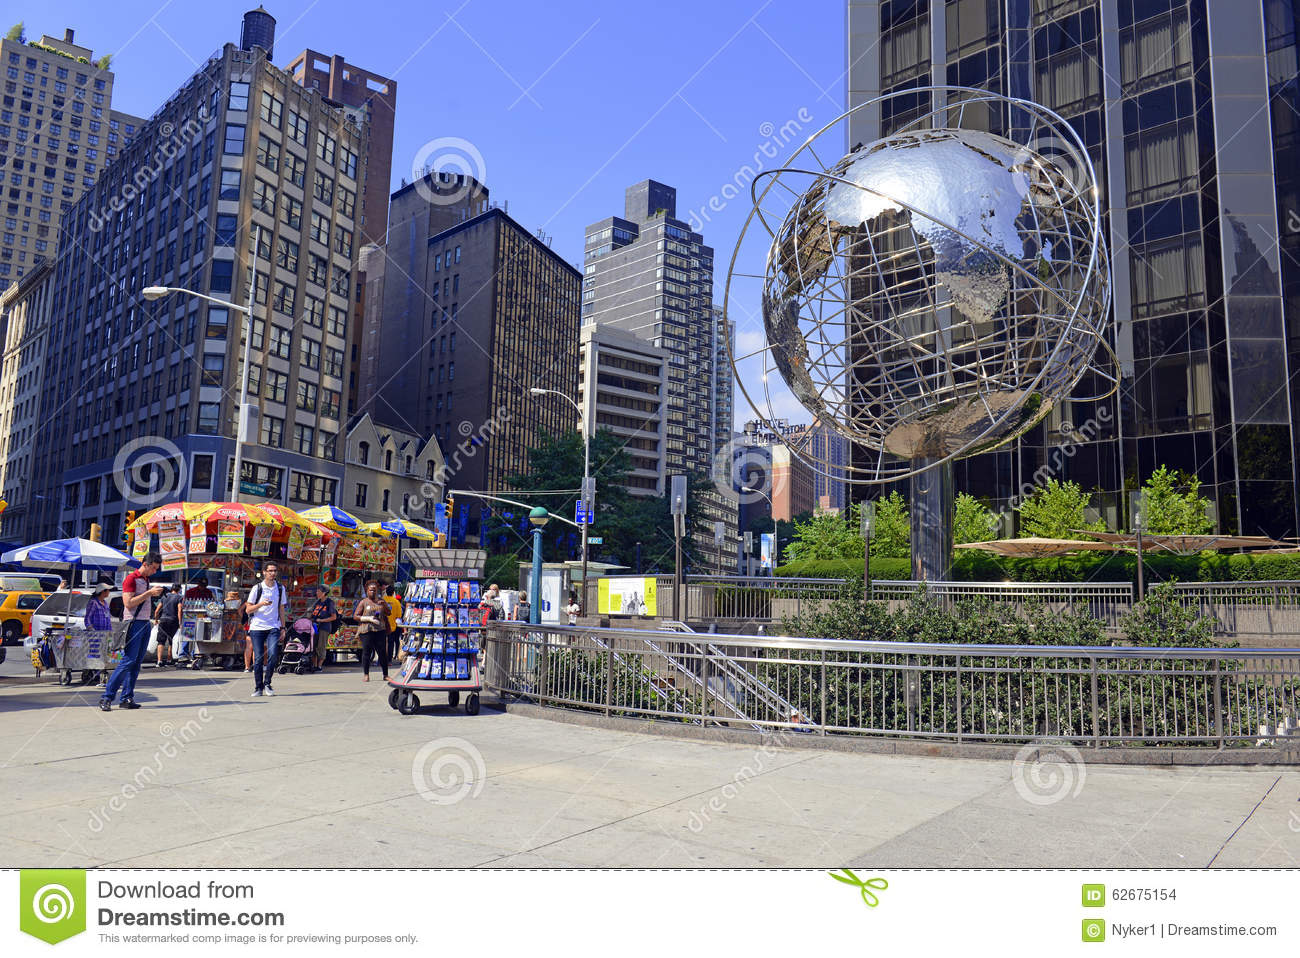 EarthCam - Columbus Circle Cam